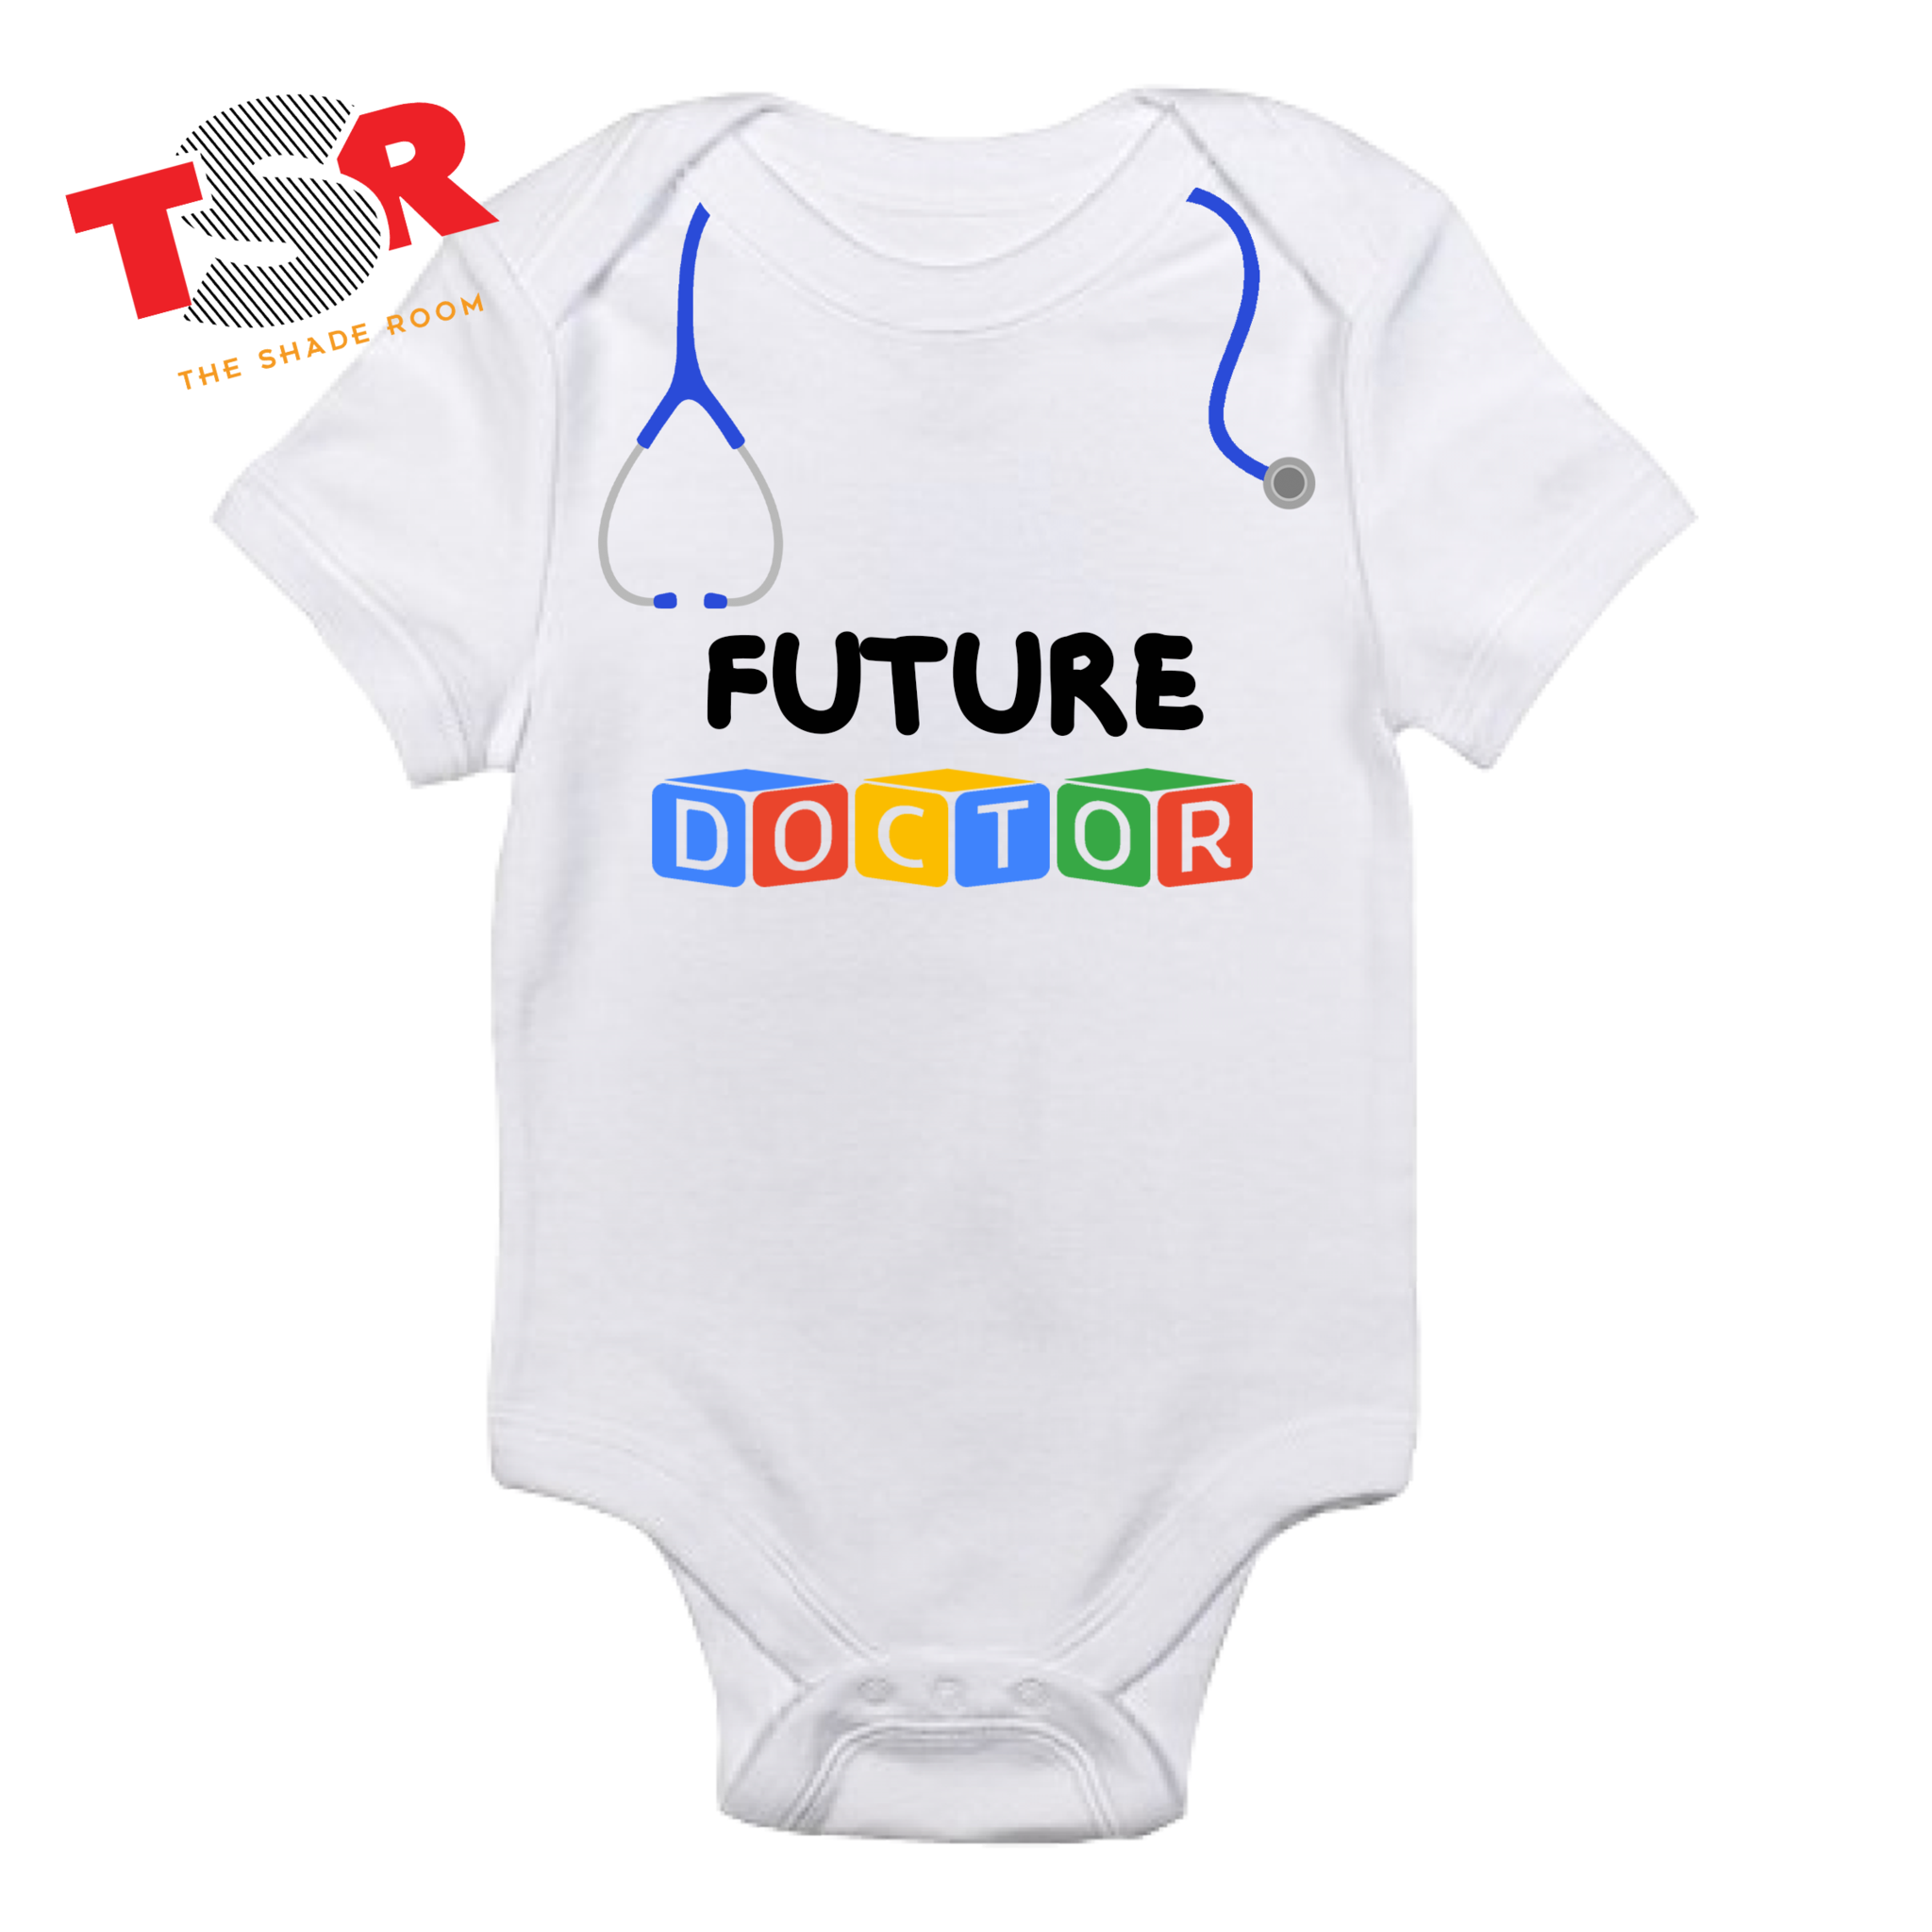 Future Doctor Onesie